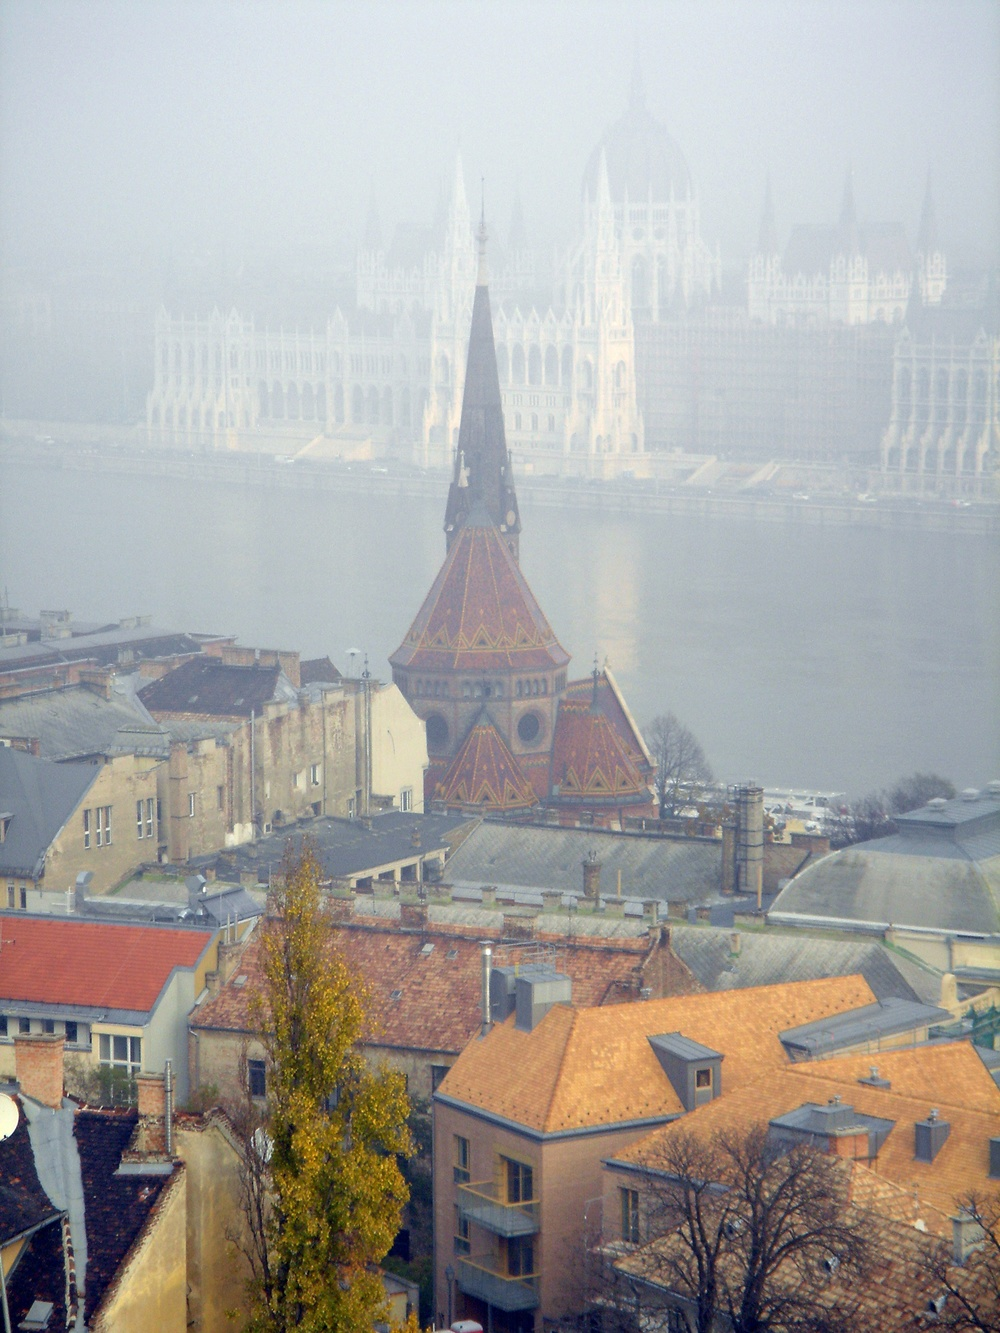 A foggy view of the Parliament Building over the Danube in Budapest, Hungary